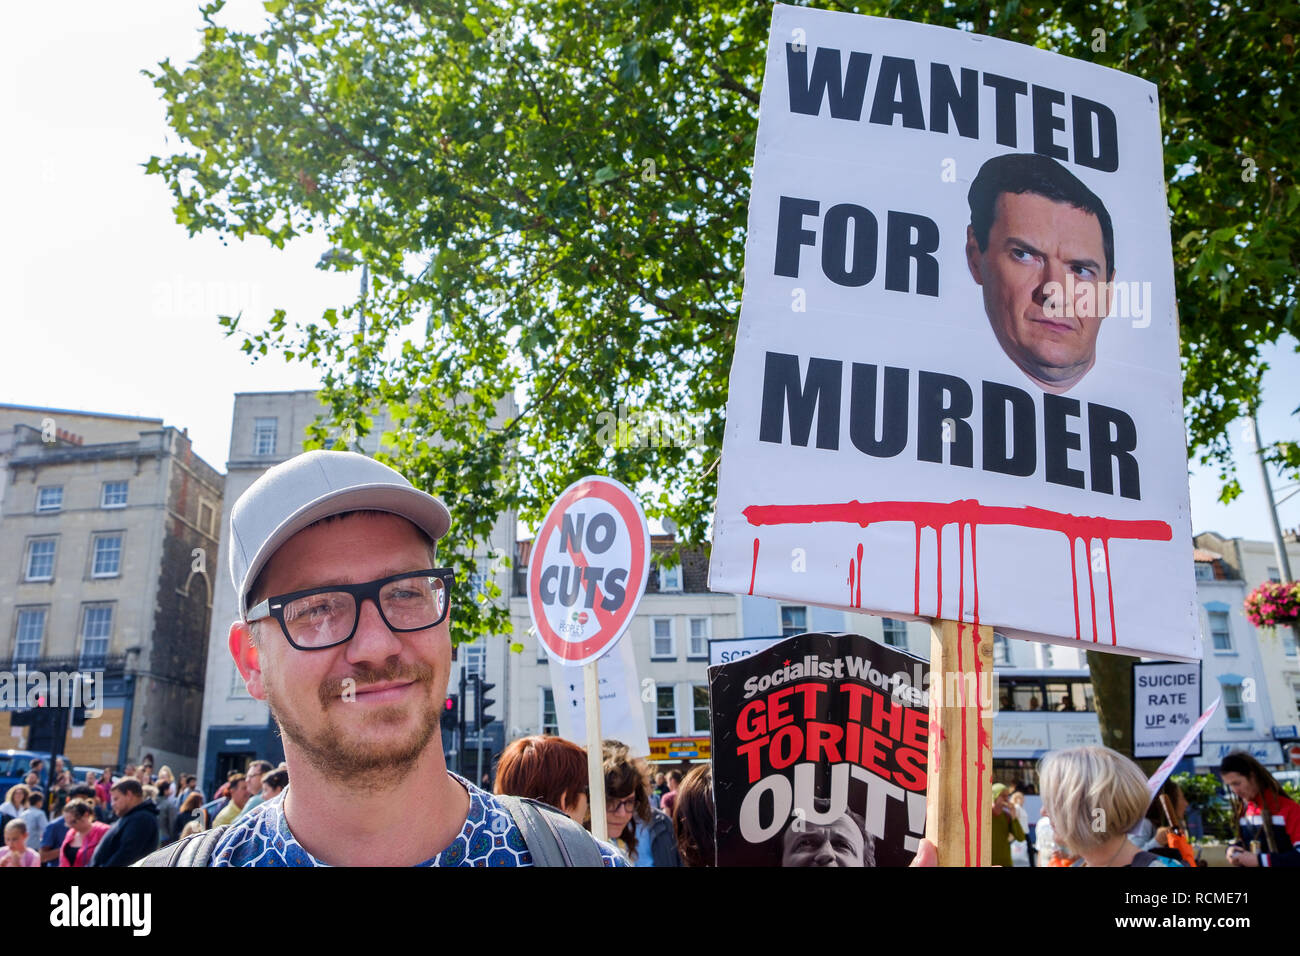 Bristol, UK. 08th July, 2015. A protester is pictured carrying an anti austerity placard during an anti austerity protest in Bristol - Stock Image